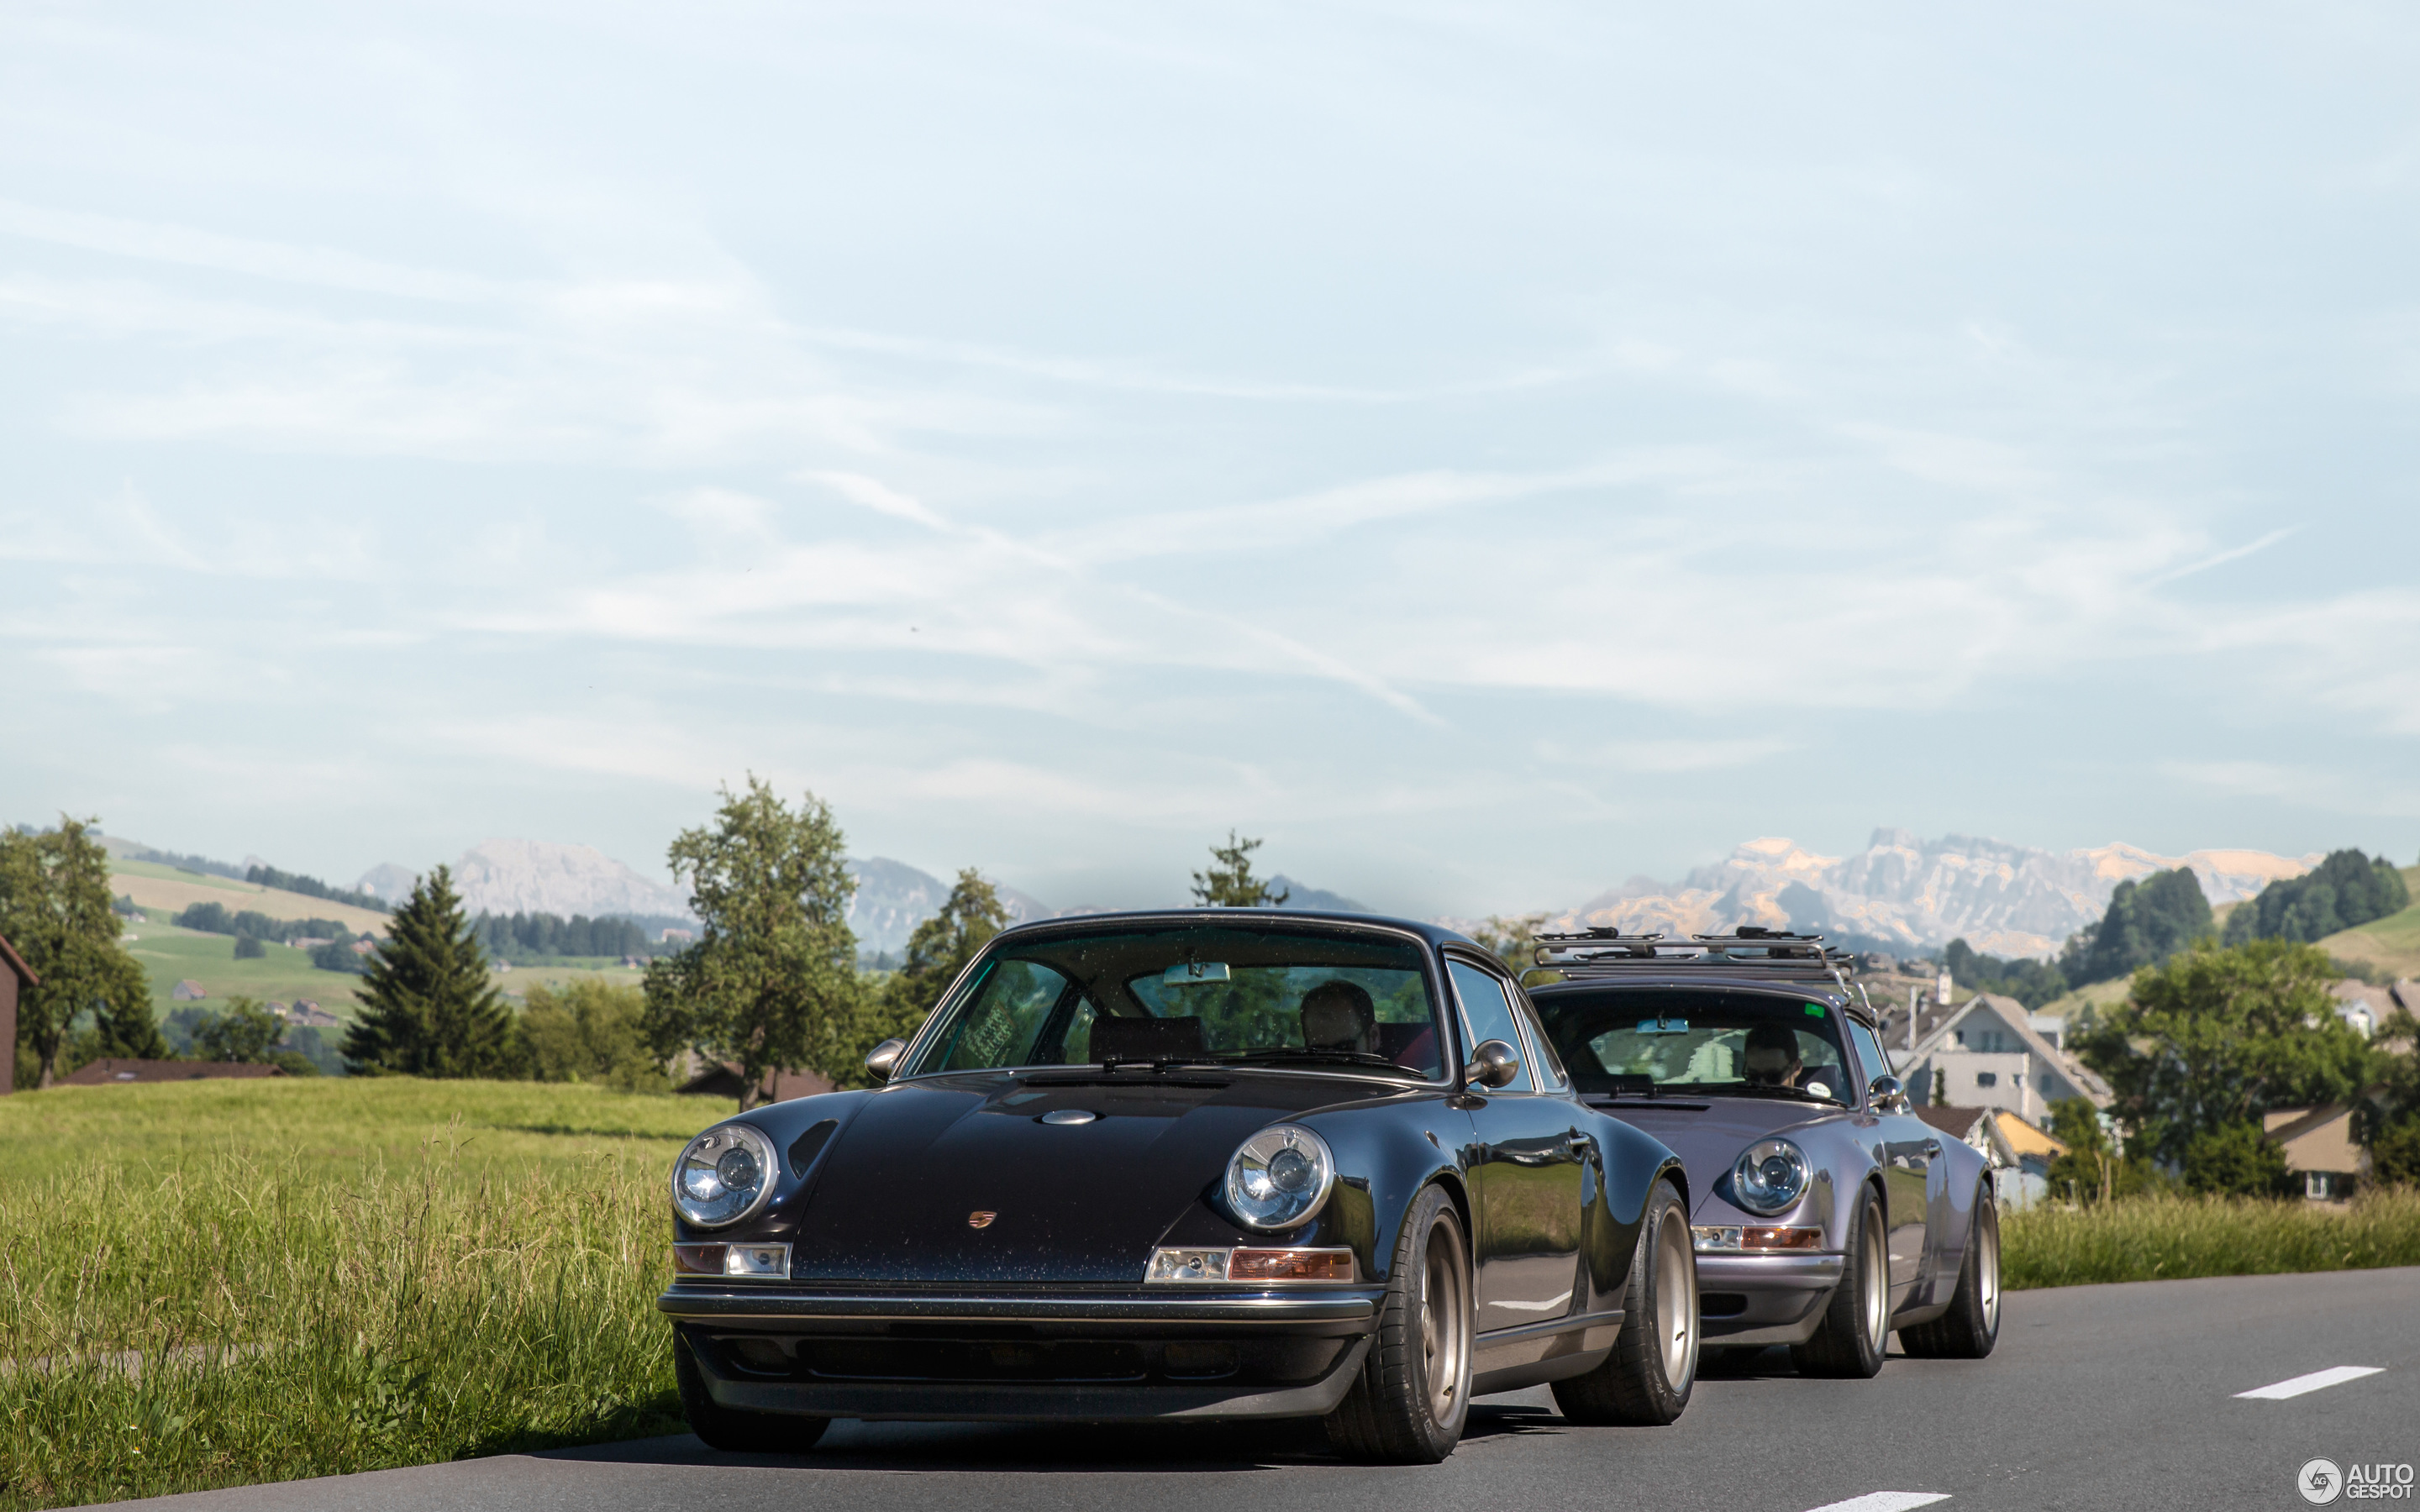 Porsche 911 Singer 4.0 - 15 June 2017 - Autogespot